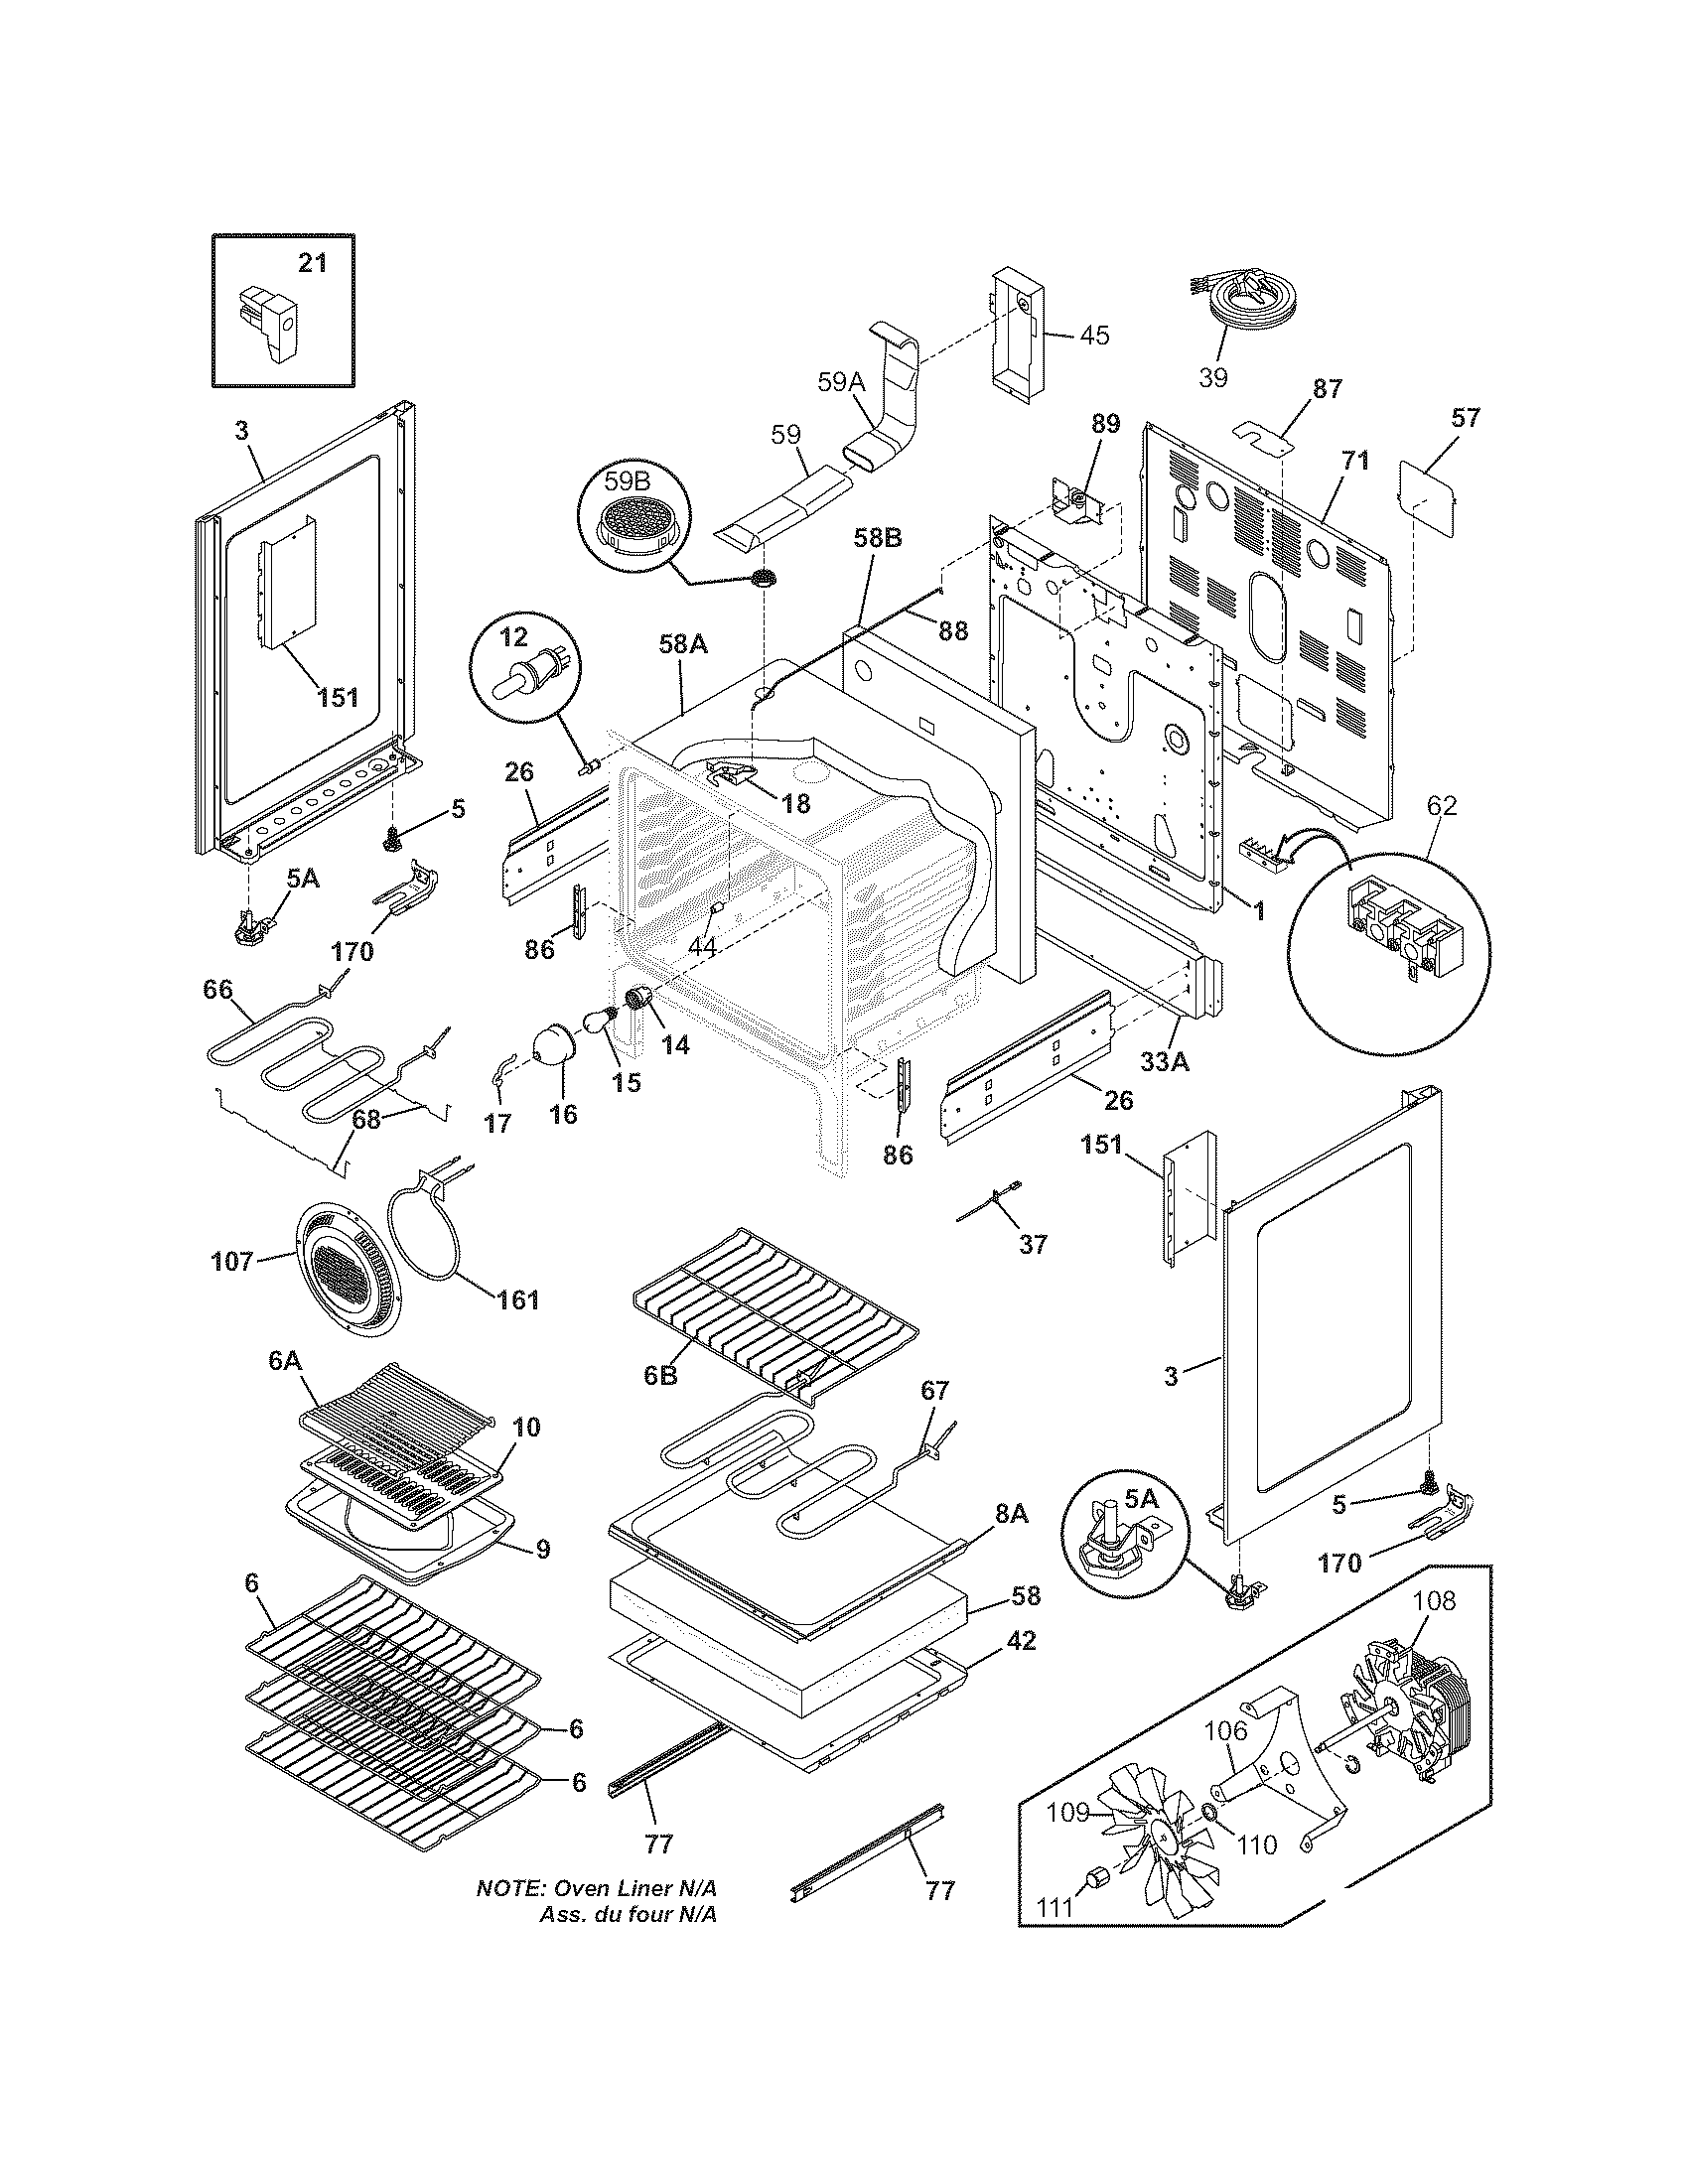 Fabulous Frigidaire Gallery Refrigerator Parts Diagram Frigidaire Gallery  Refrigerator Parts Diagram 1700 x 2200 · 75 kB · png